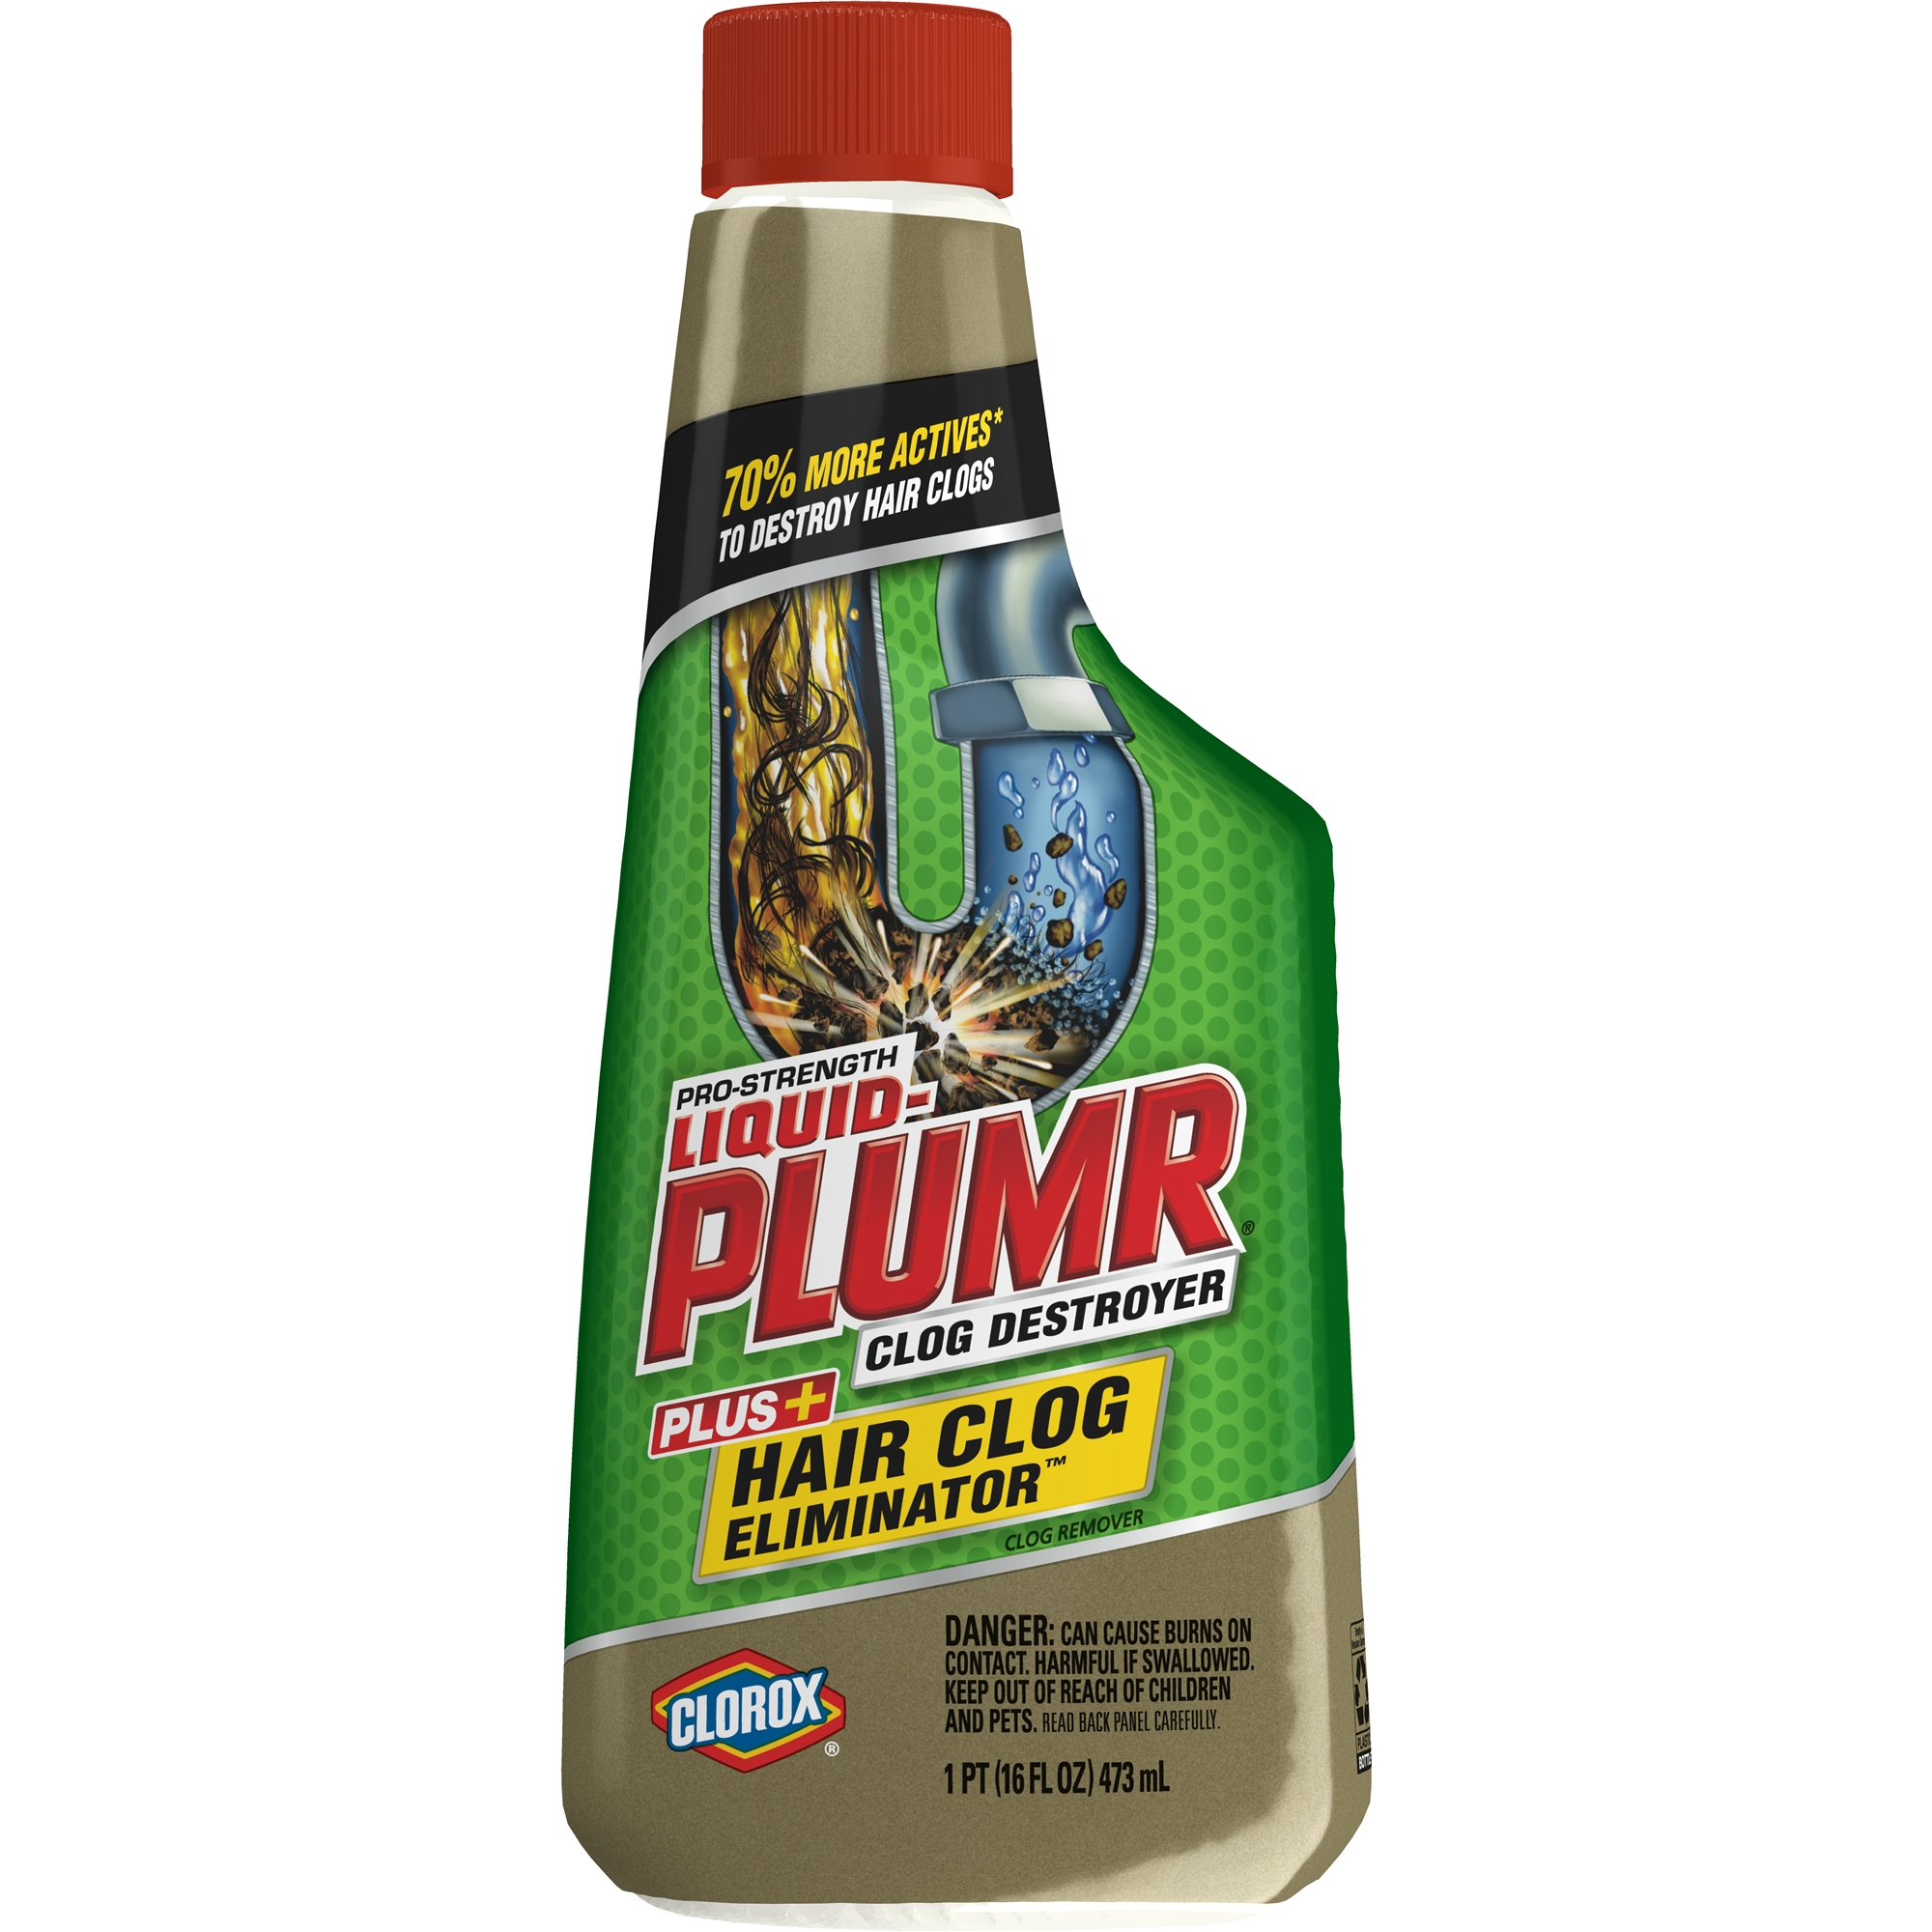 Liquid-Plumr Hair Clog Eliminator removes tough hair clogs, 16 oz